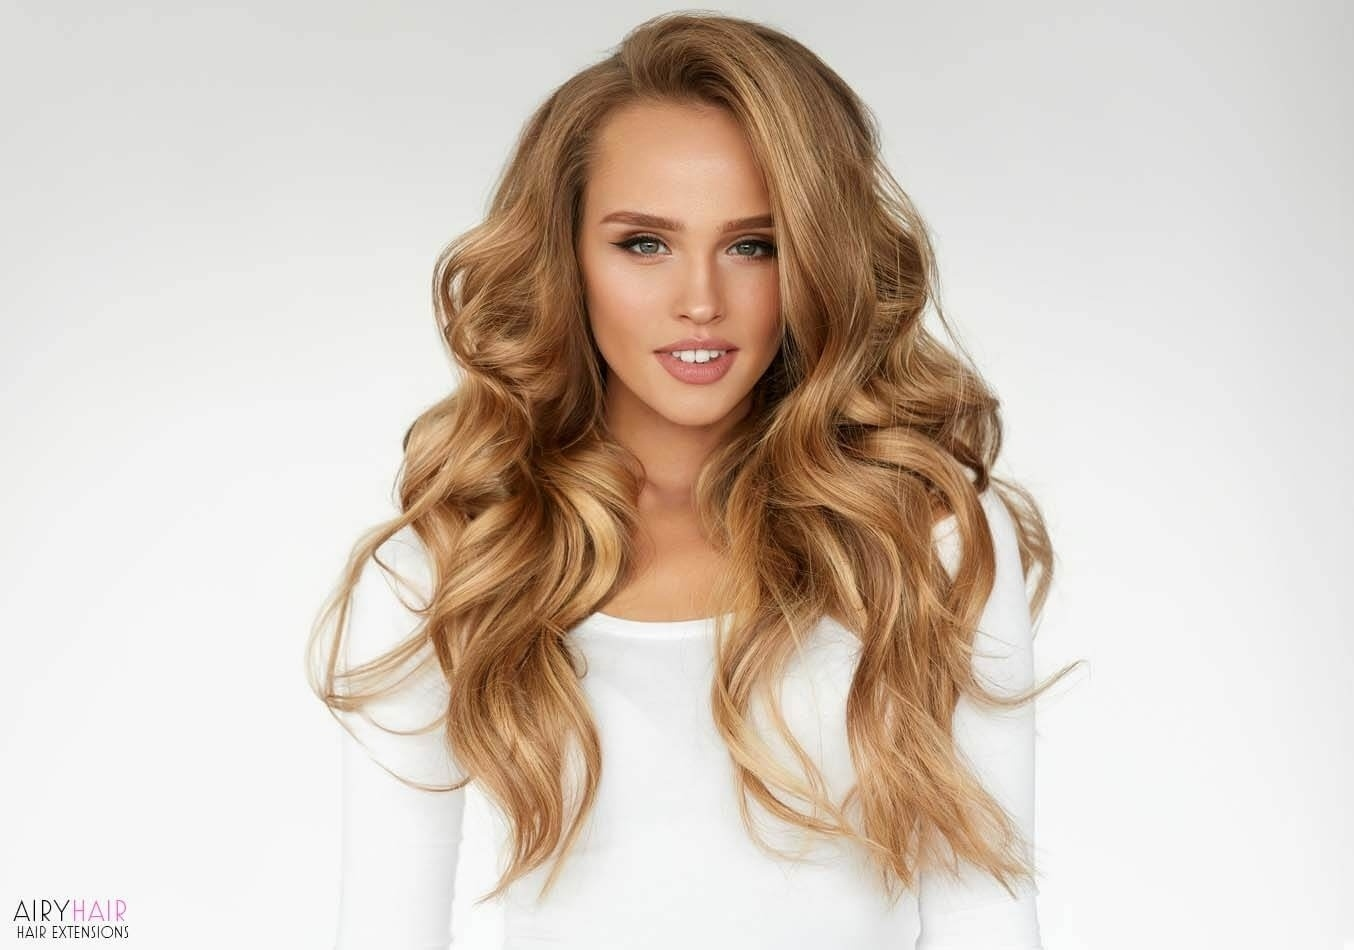 buy one piece body wave hair extensions | airyhair